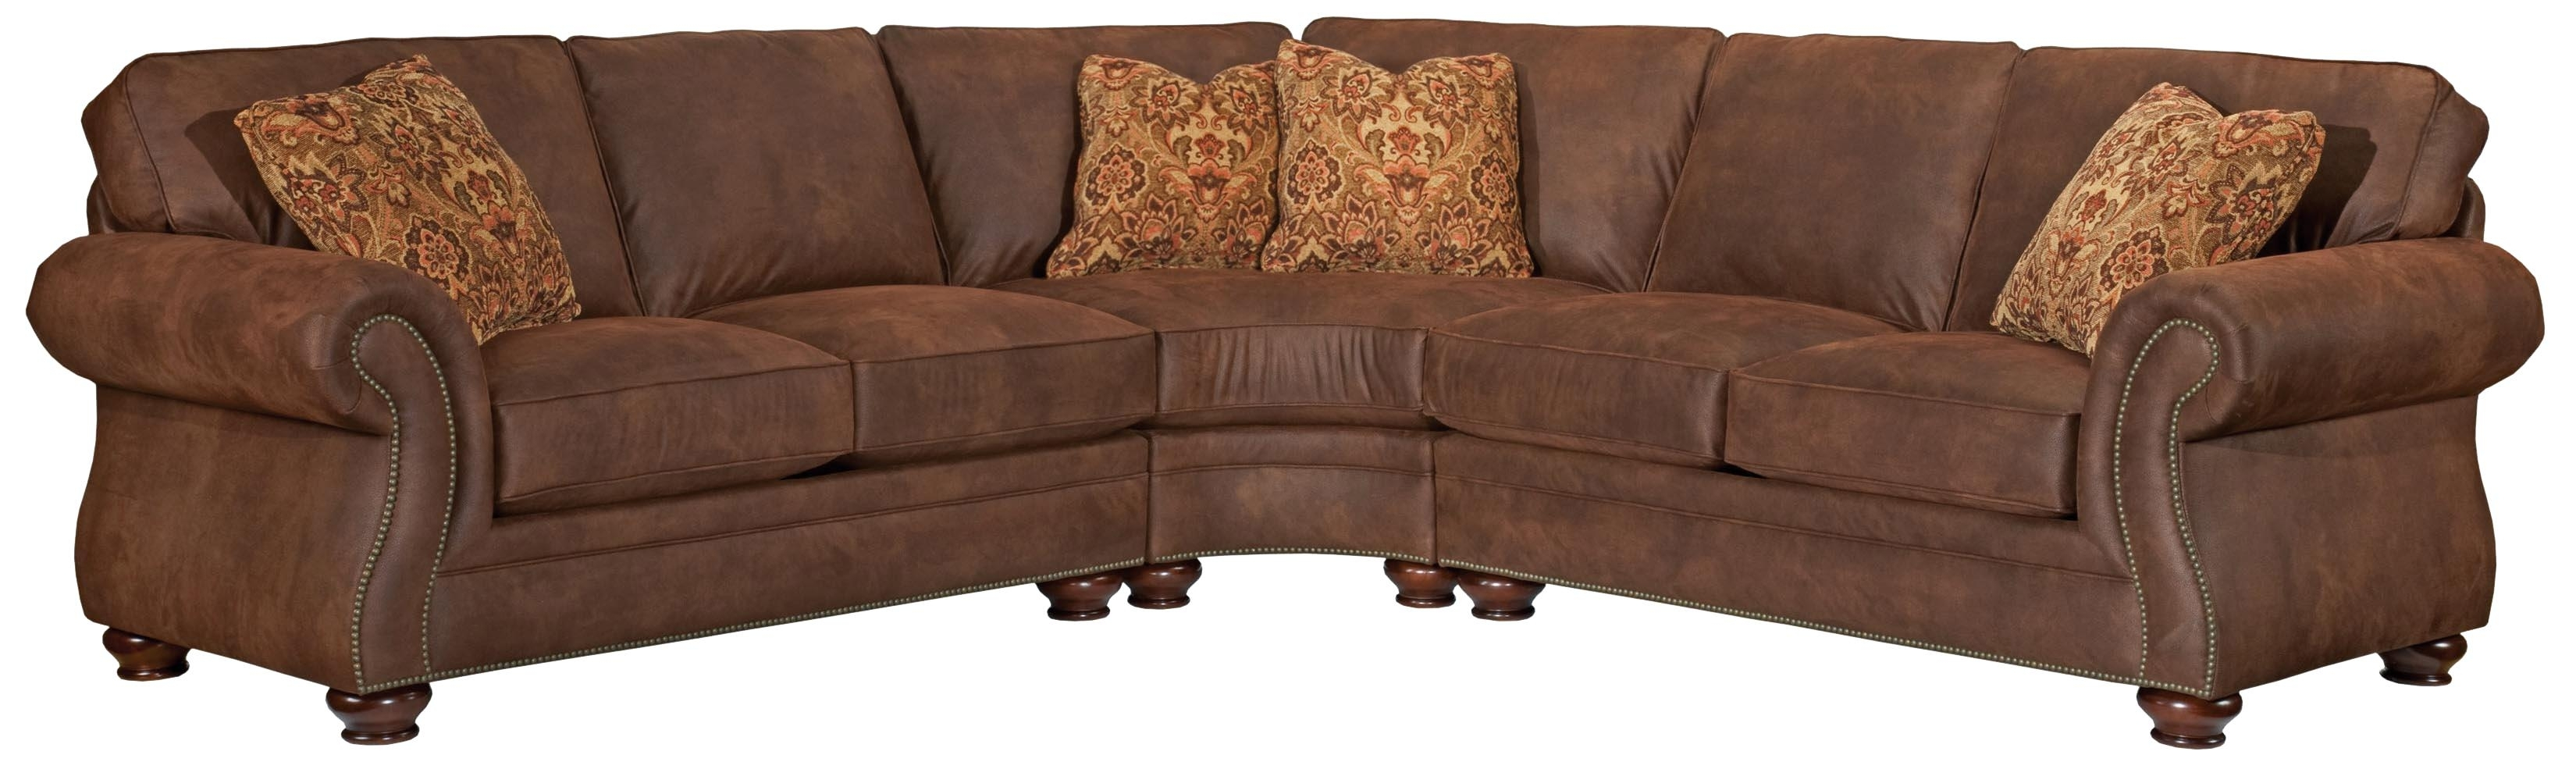 Broyhill Furniture Laramie 3 Piece Wedge Sectional Sofa - Ahfa throughout Blaine 3 Piece Sectionals (Image 10 of 30)